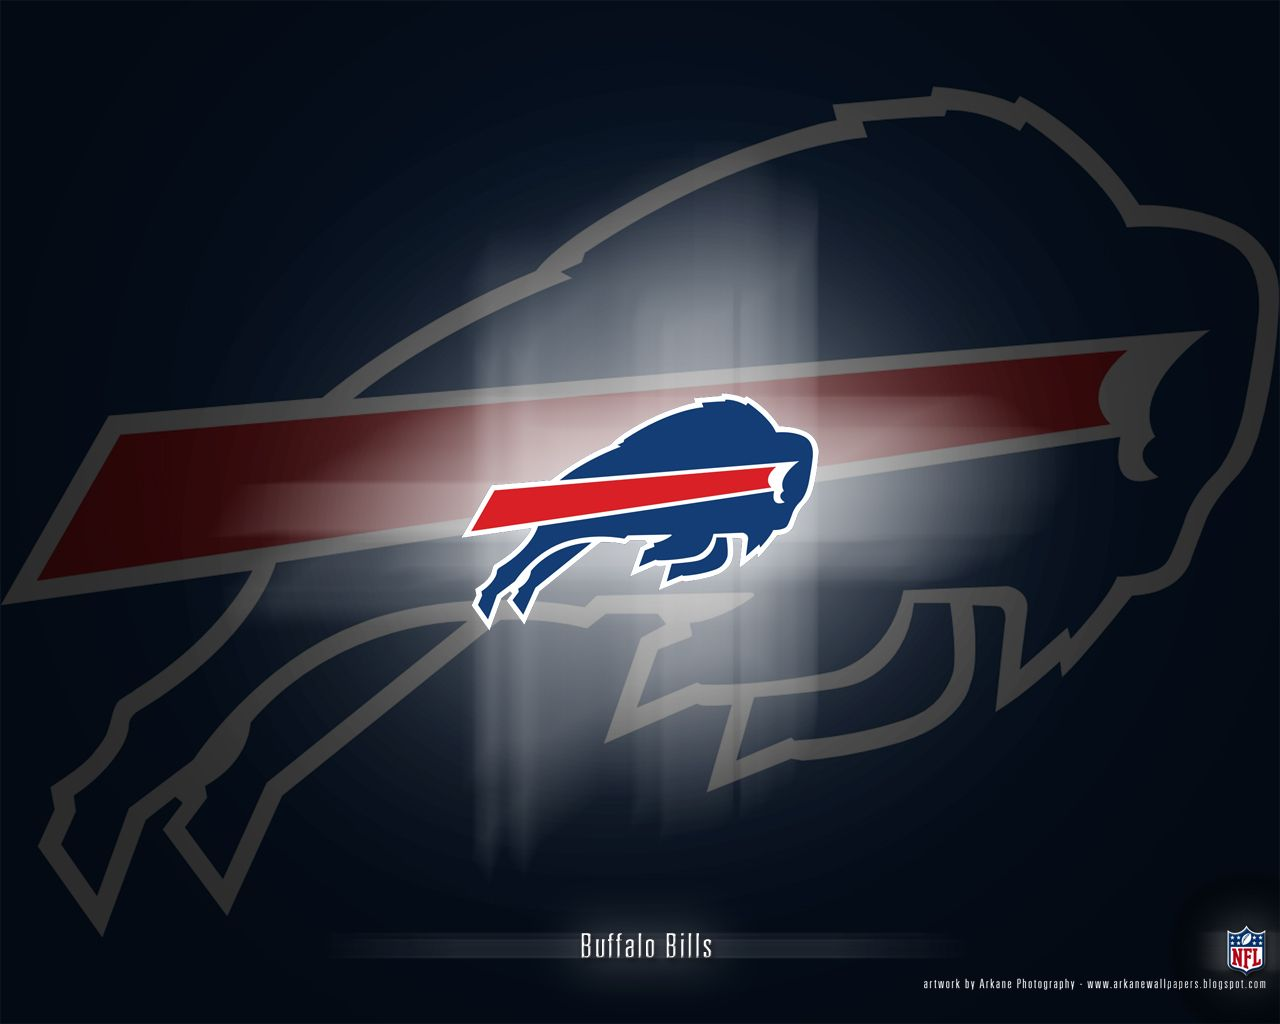 Buffalo Bills Wallpapers Wallpaper Cave Buffalo Bills Logo Buffalo Bills Buffalo Bills Stuff